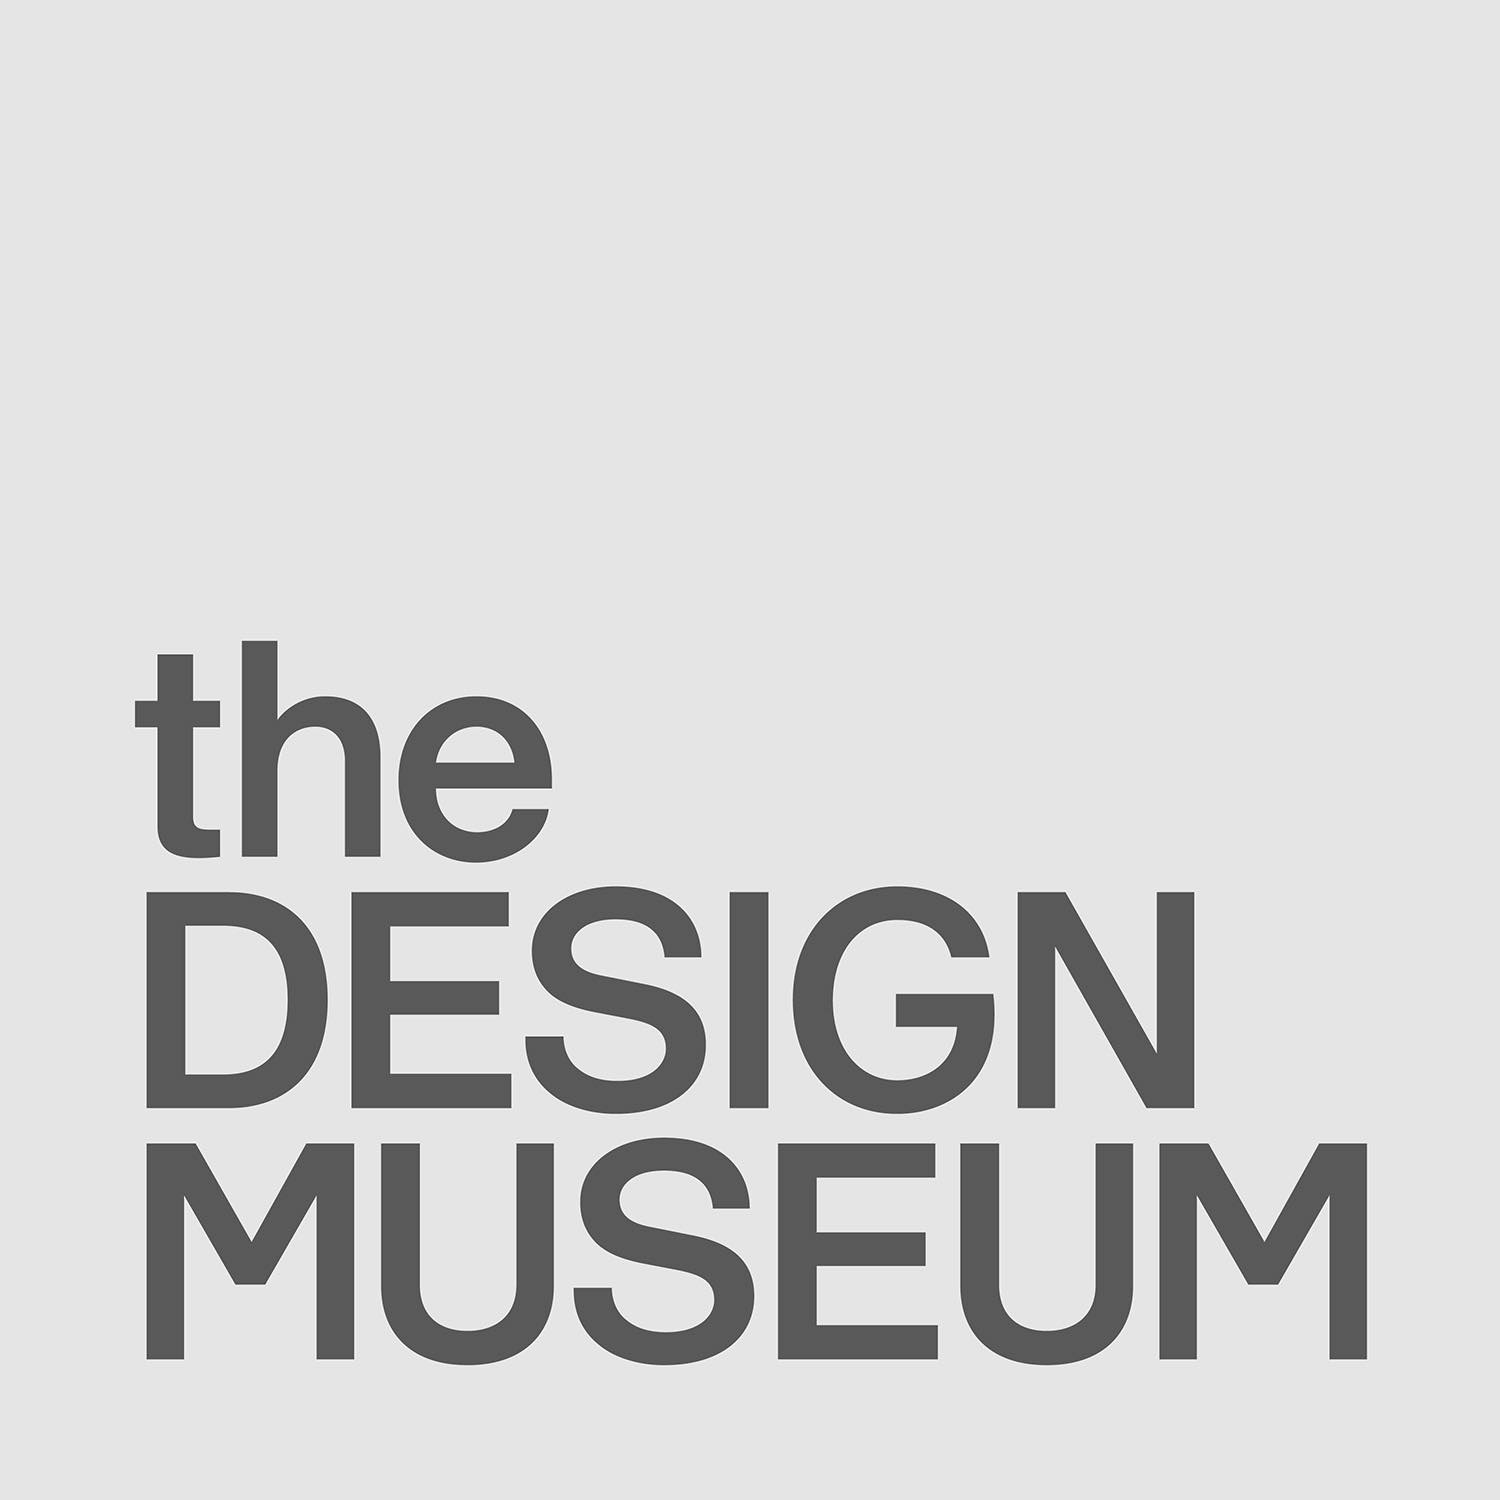 Design Museum identity 2003 2016 Fonts In Use